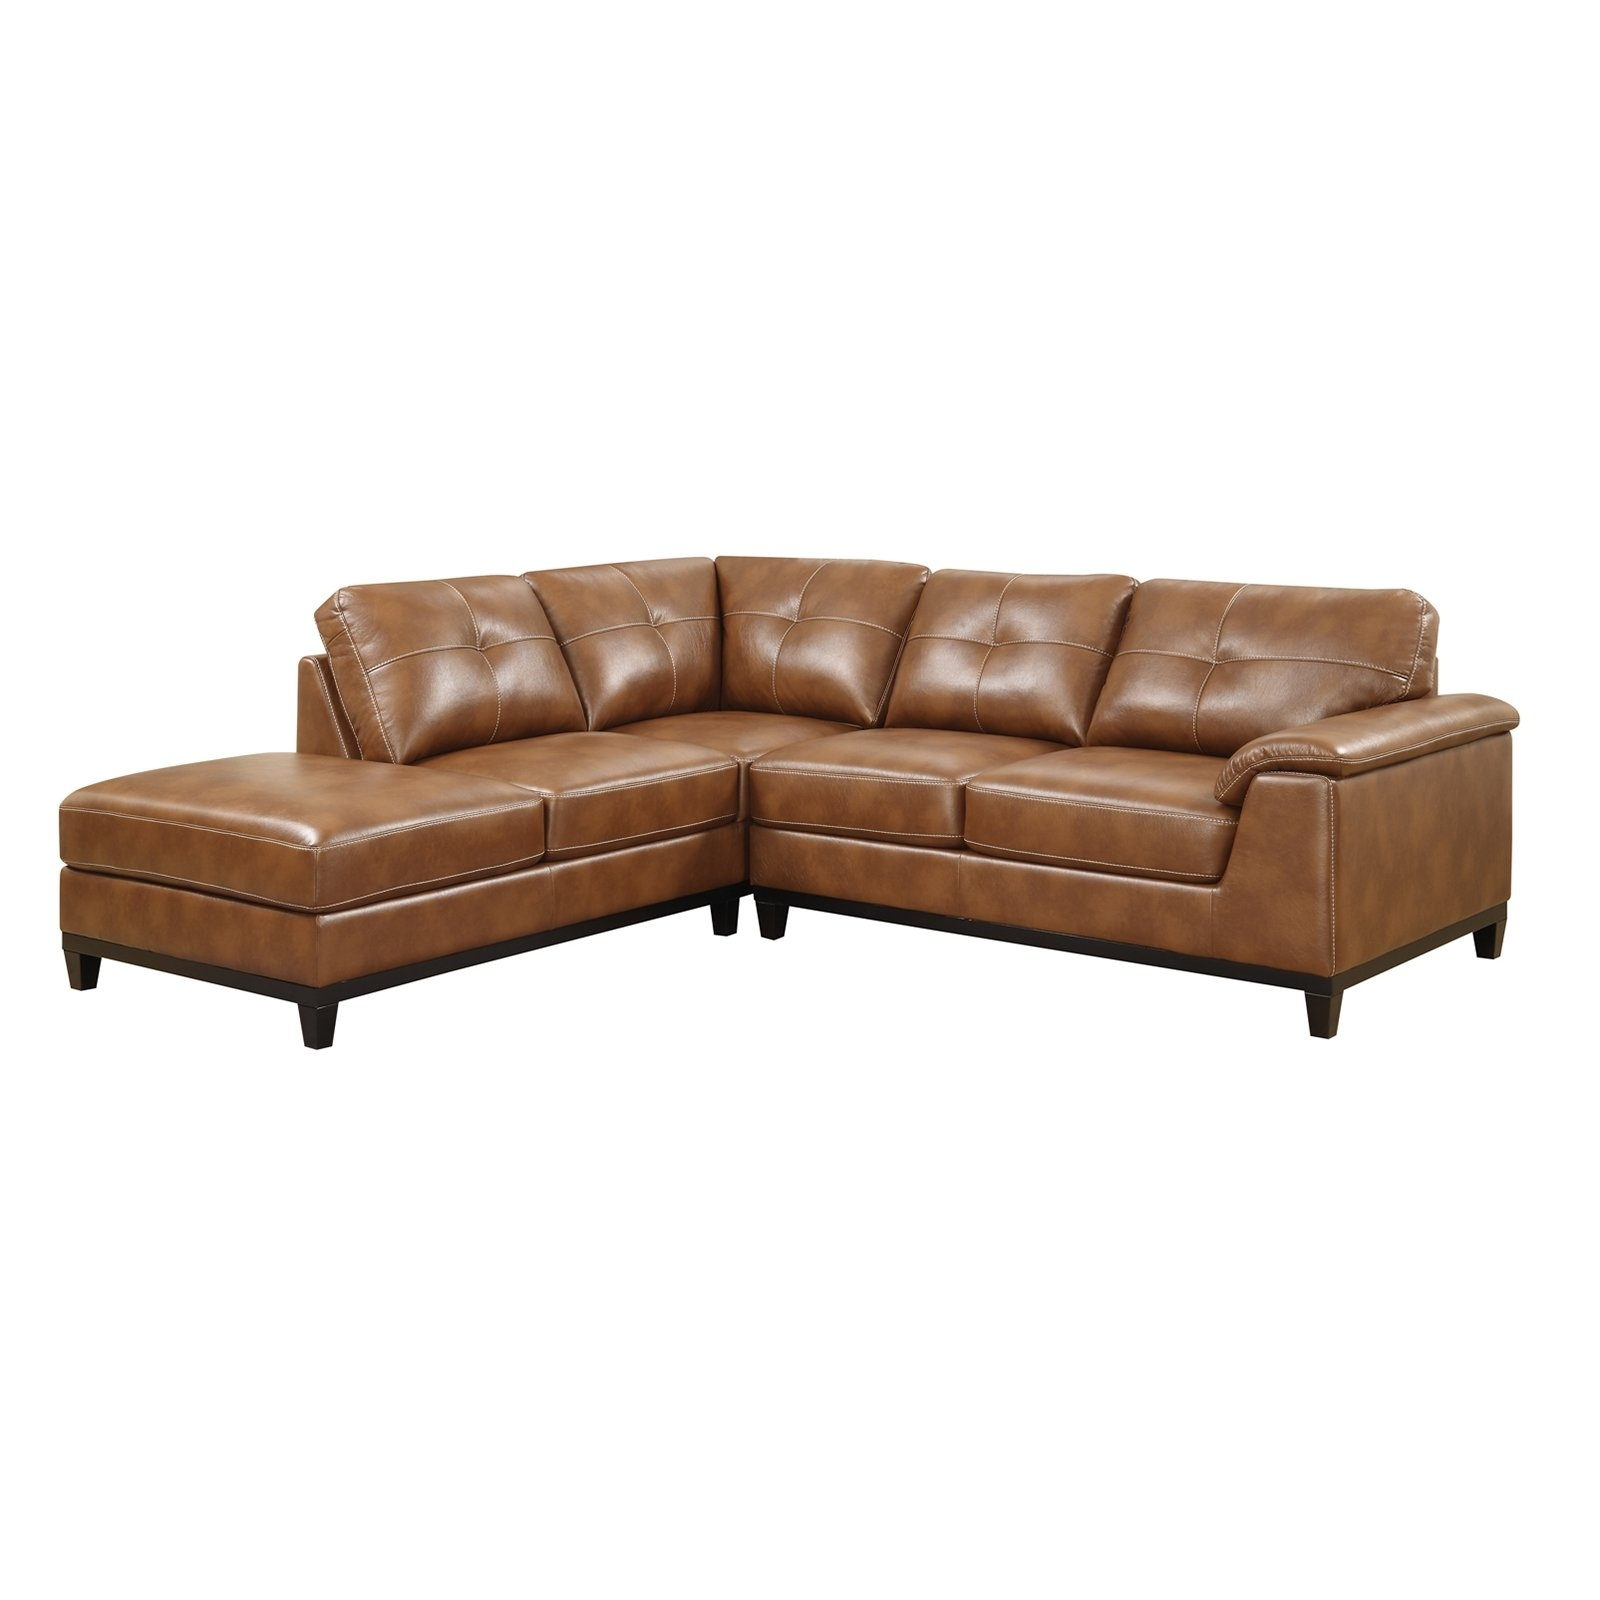 Dufresne Sectional Sofas for Most Recently Released Chelsea Home Furniture Lena Sectional Sofa - Sectional Sofas At